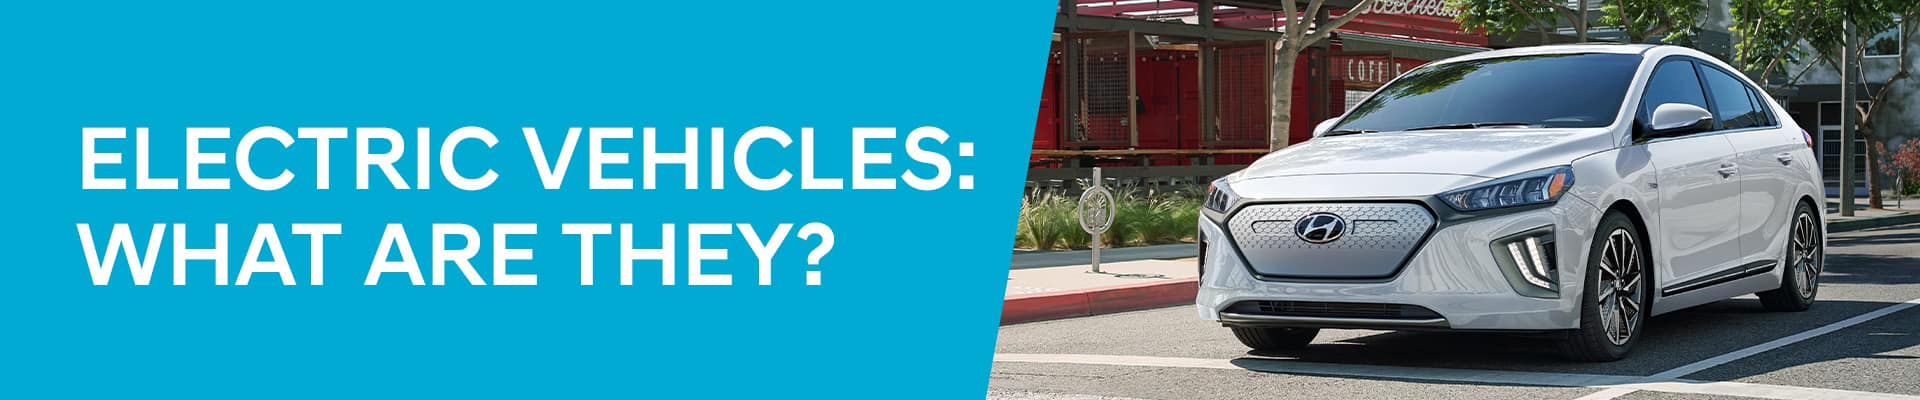 Electric Vehicles: What Are They